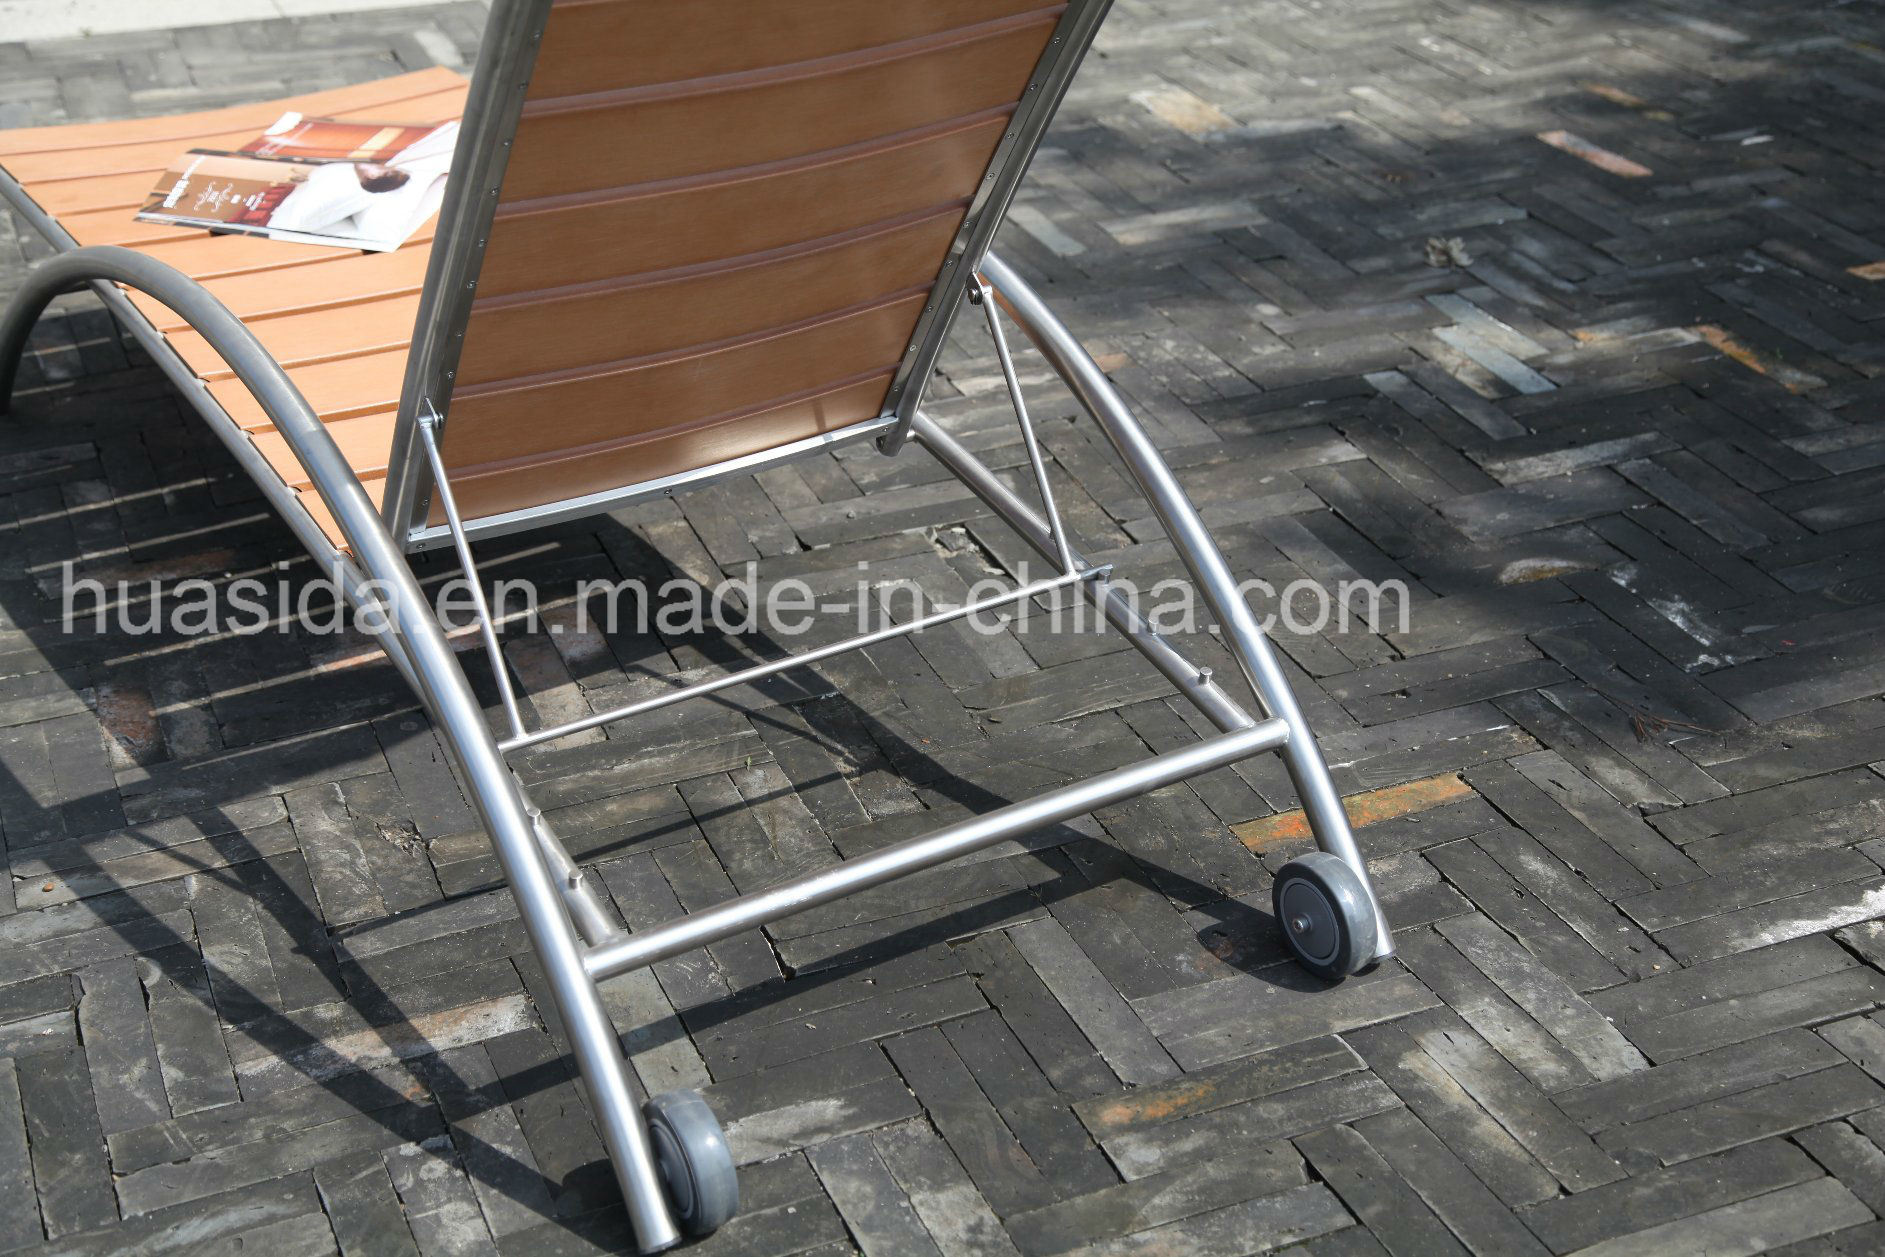 Stainless Steel Poly Wood Lounger Using in Hotel Beach Garden